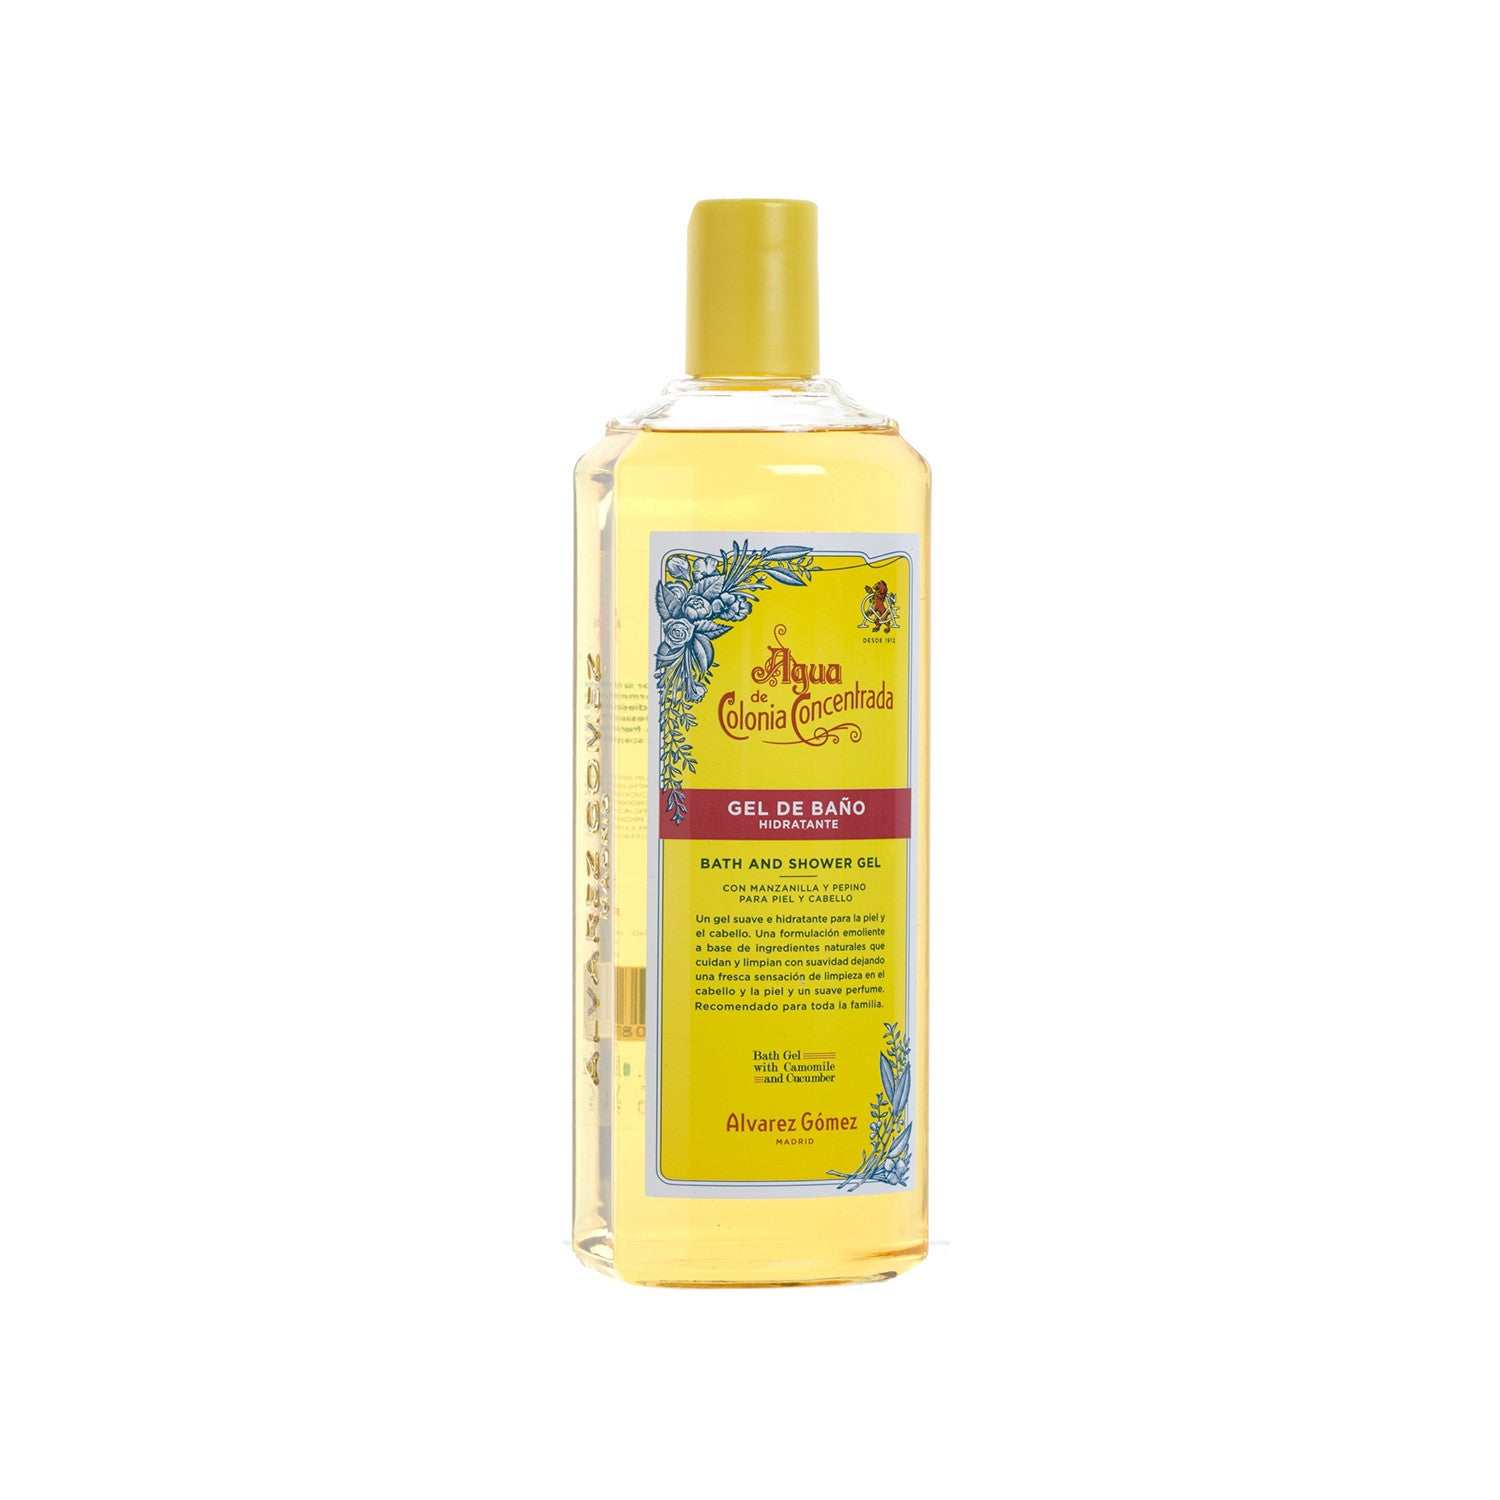 Alvarez Gomez Agua de Colonia Concentrada Bath and Shower Gel | New London Pharmacy